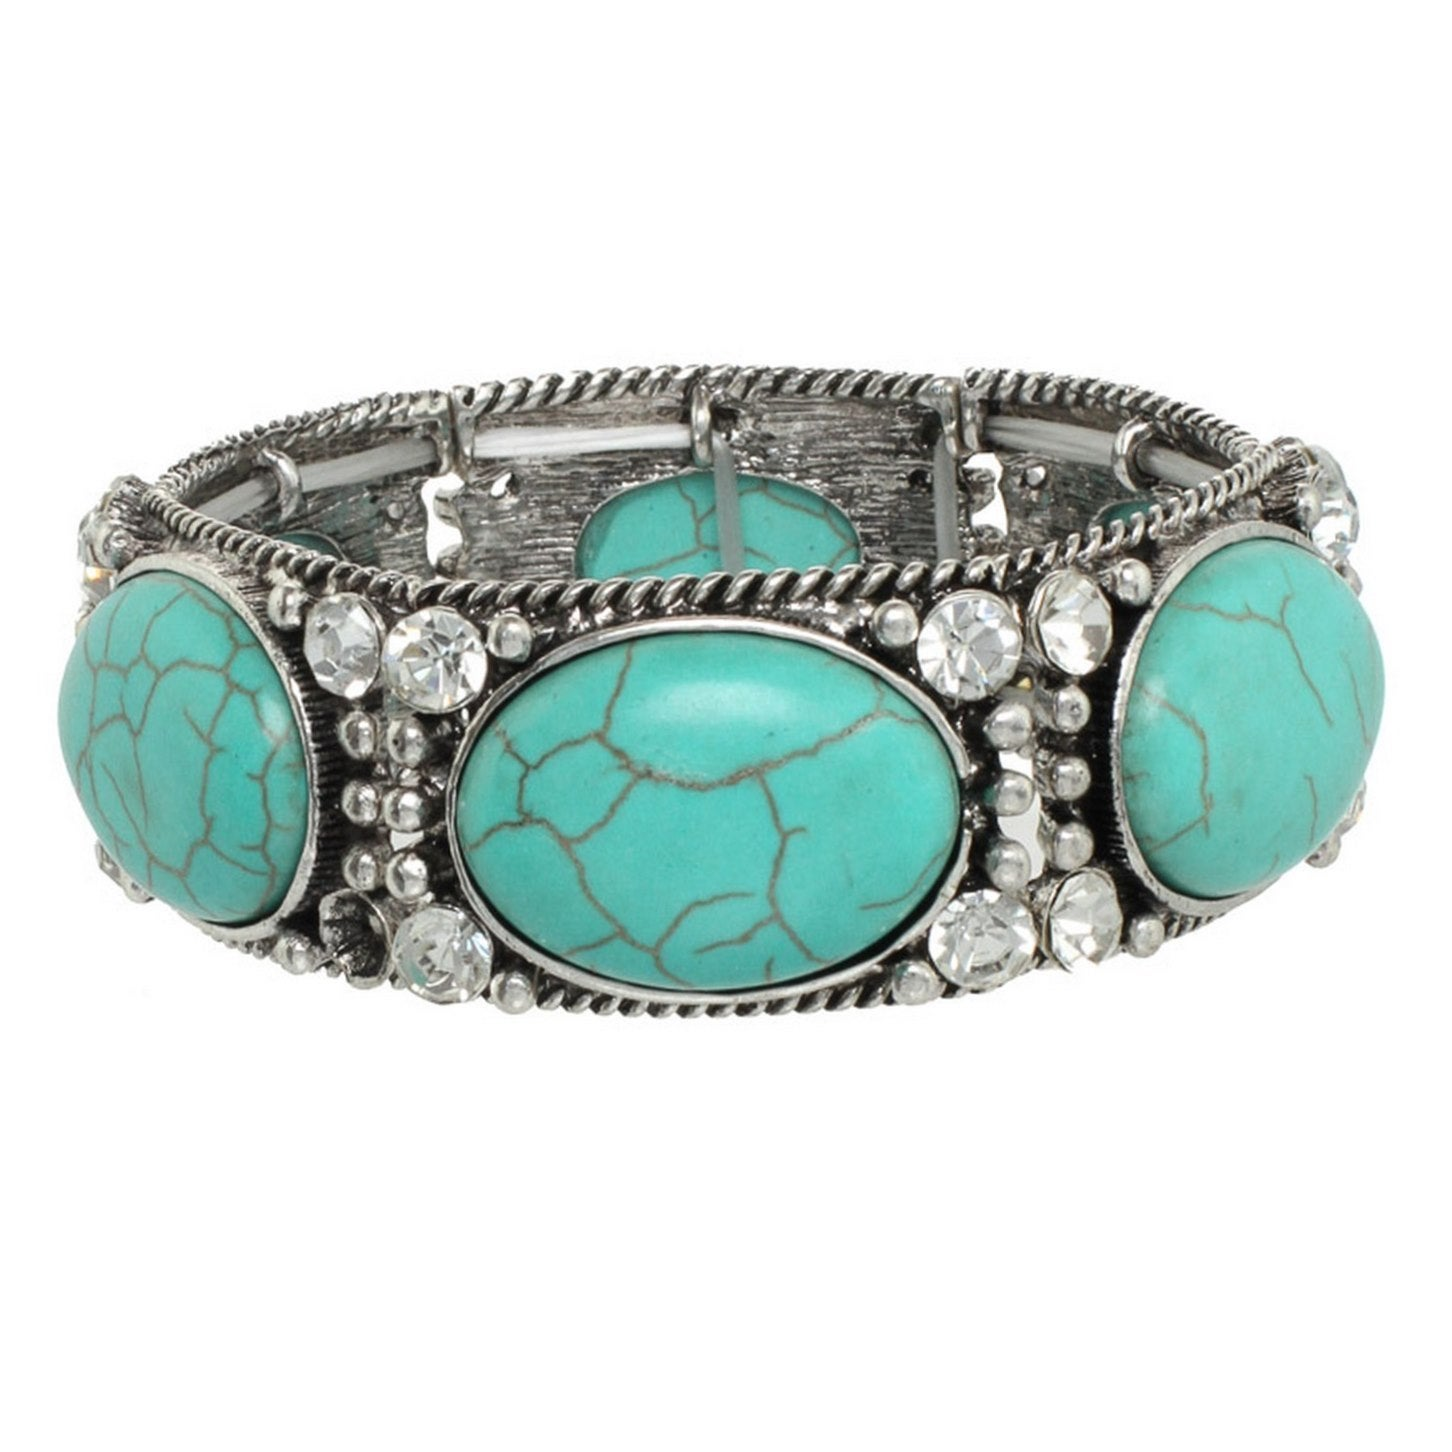 J&H Designs Silvertone Turquoise and Rhinestone Fancy Str...